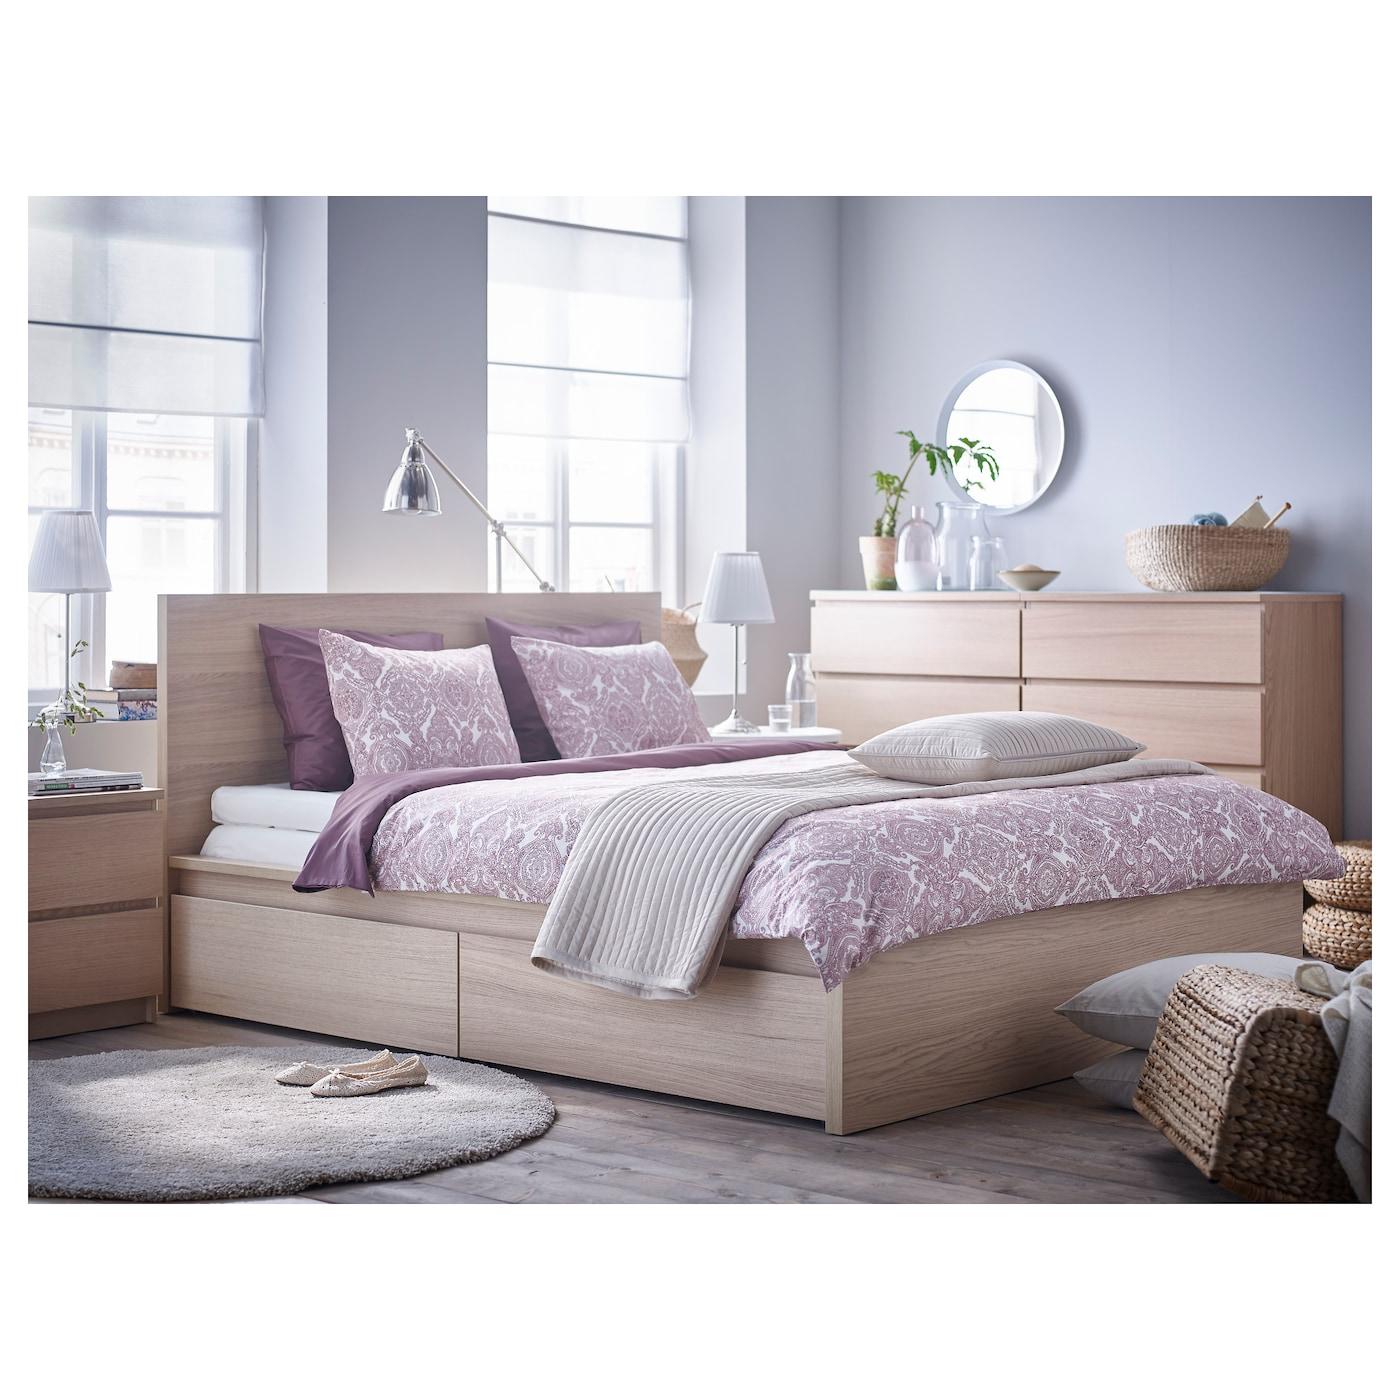 bed beds in storage en depot pure furniture mattresses captain with decor categories canada home p bedroom majestic s black and the double